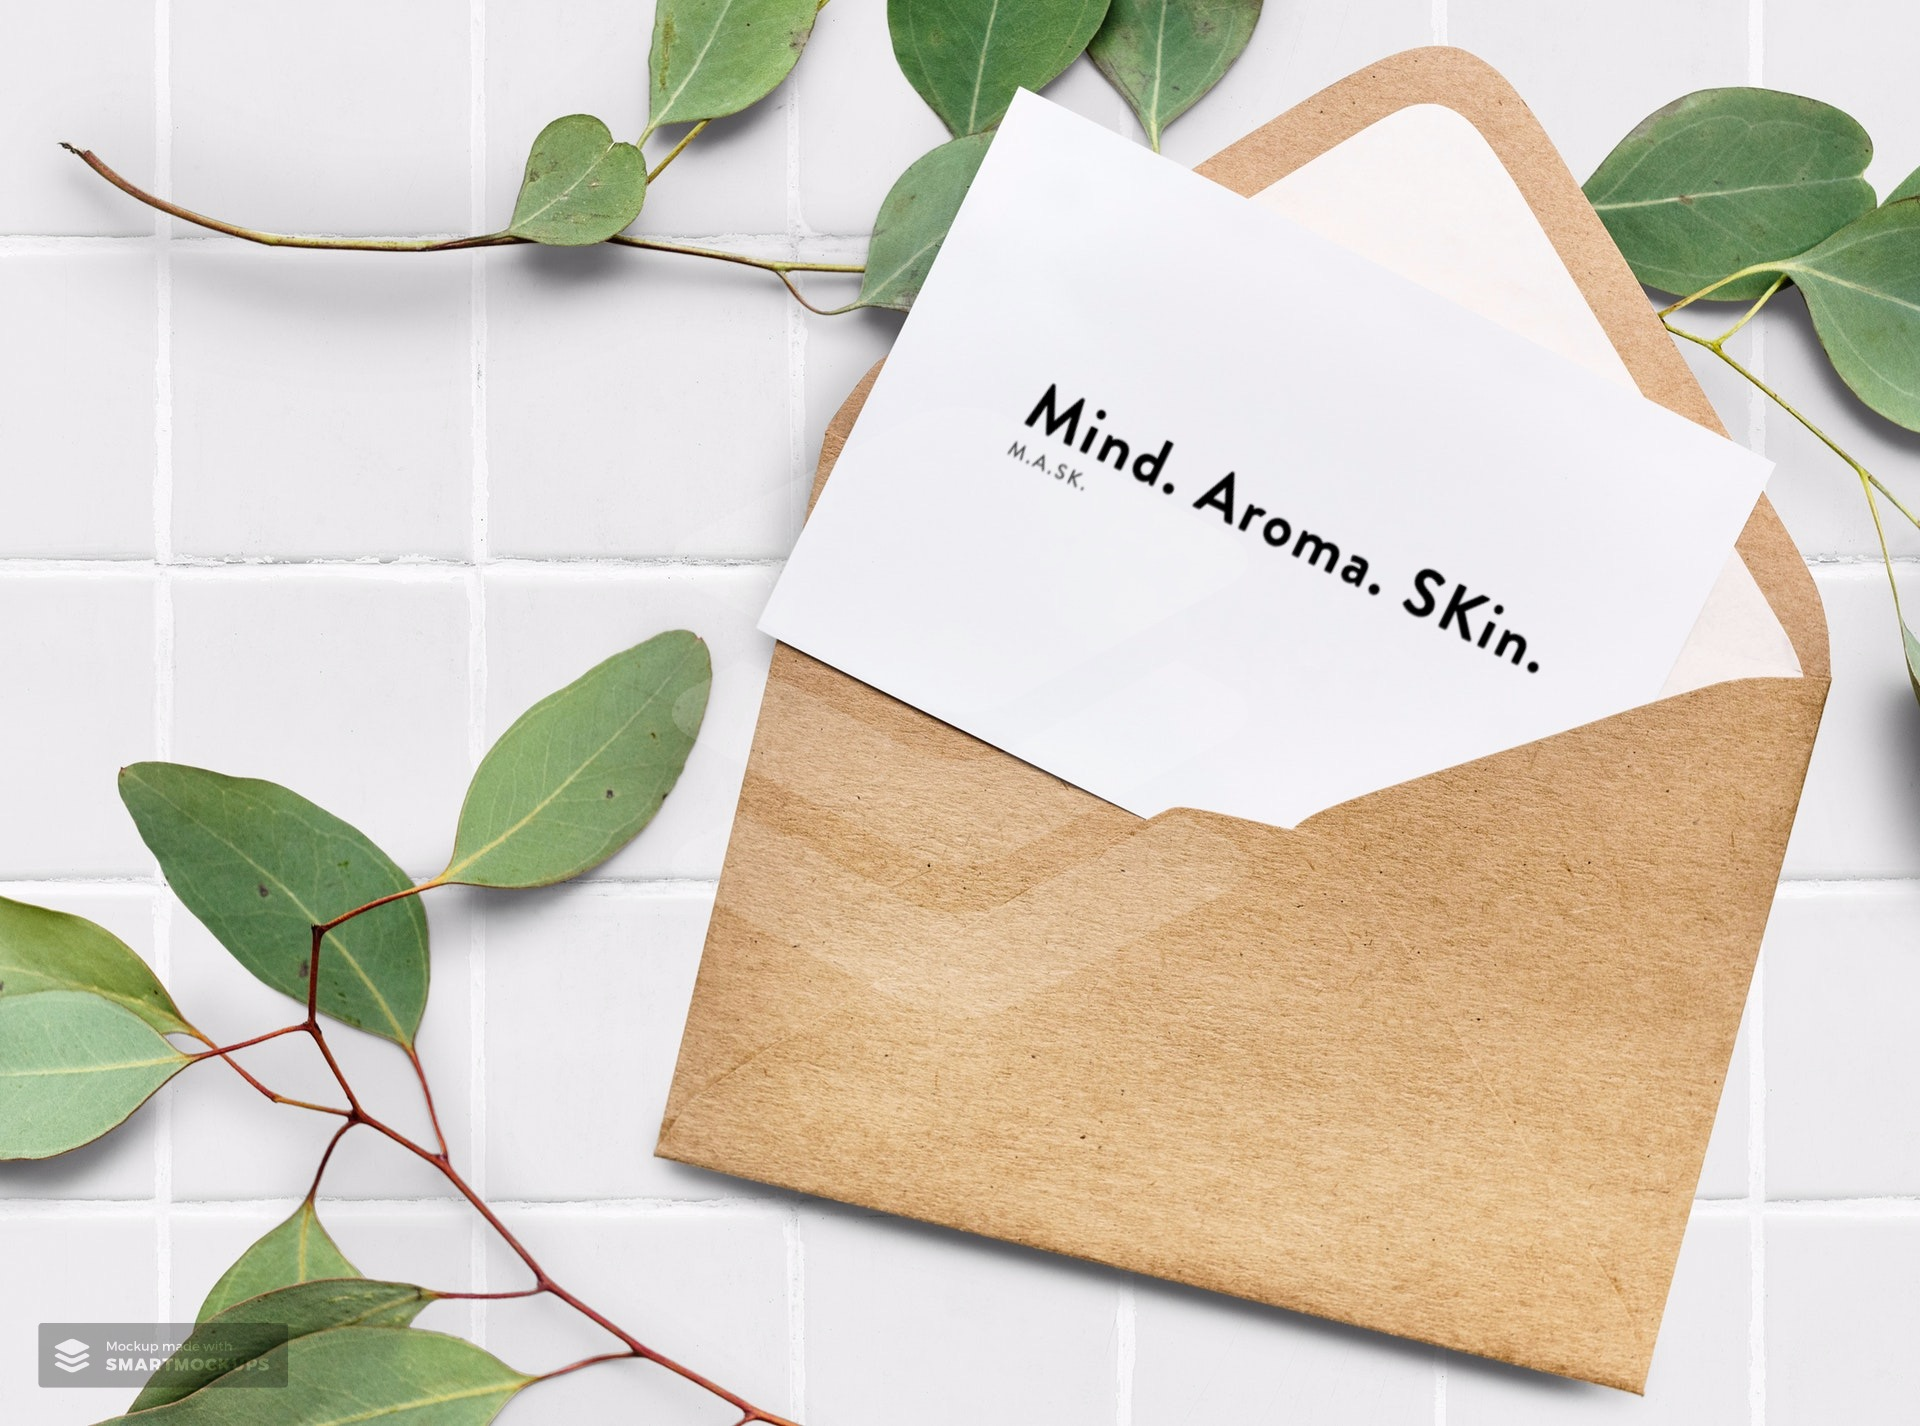 An invitation to the world of Mindfulness, Aromatherapy and SKincare